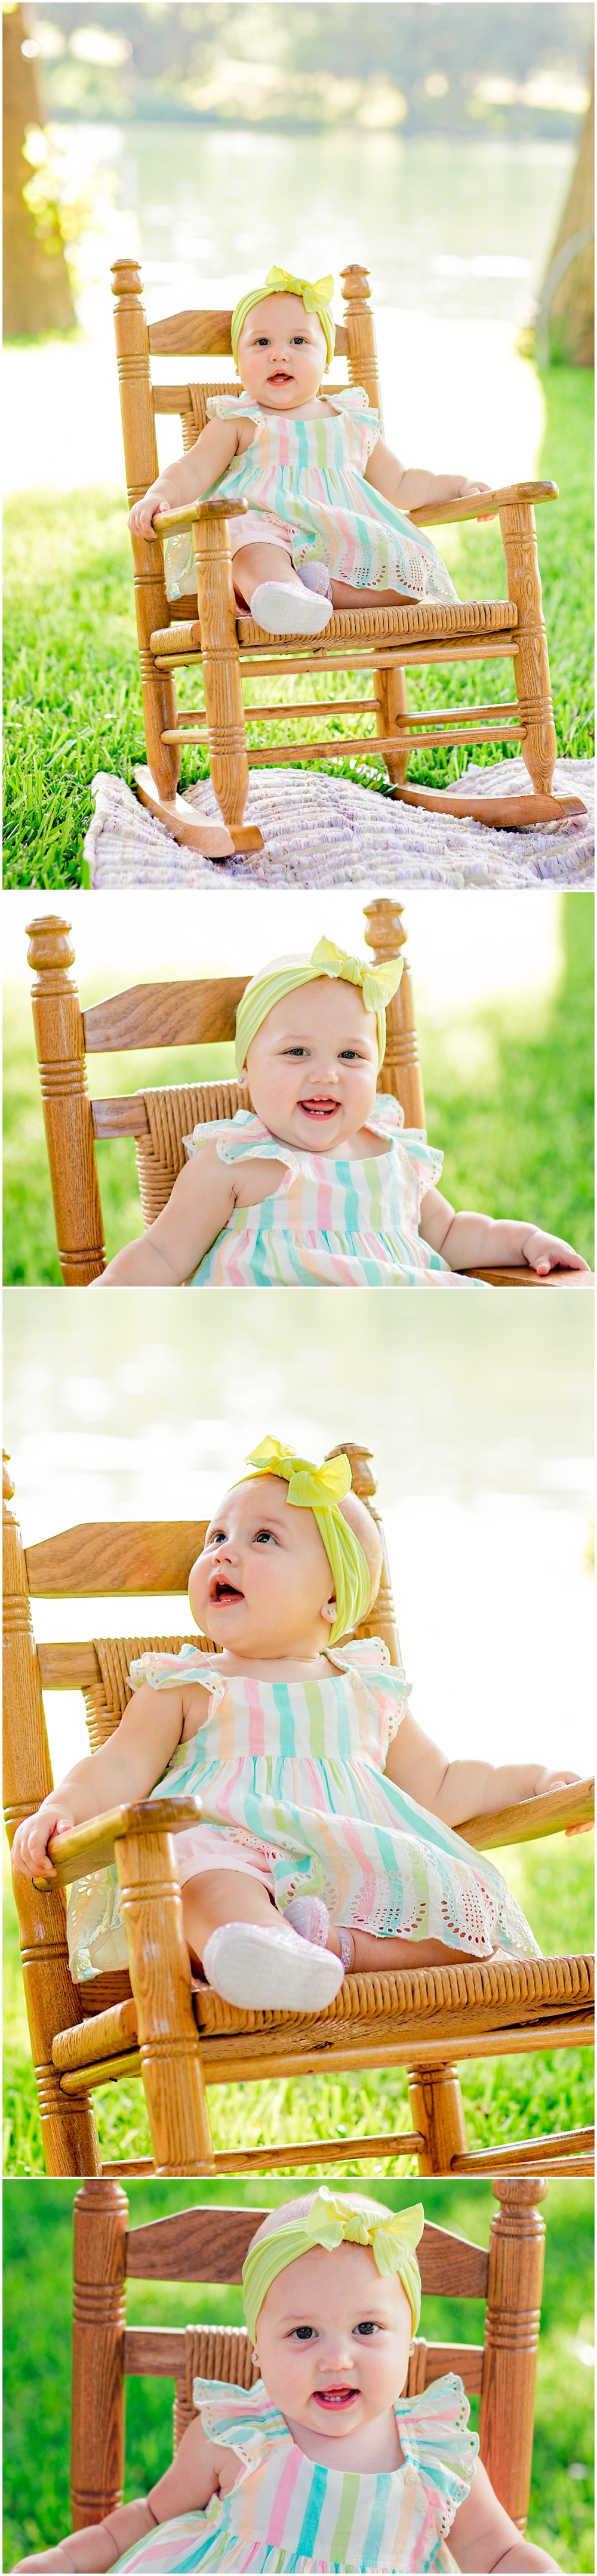 Cake Smash-New-Braunfels-Photographer-Carly-Barton-Photography